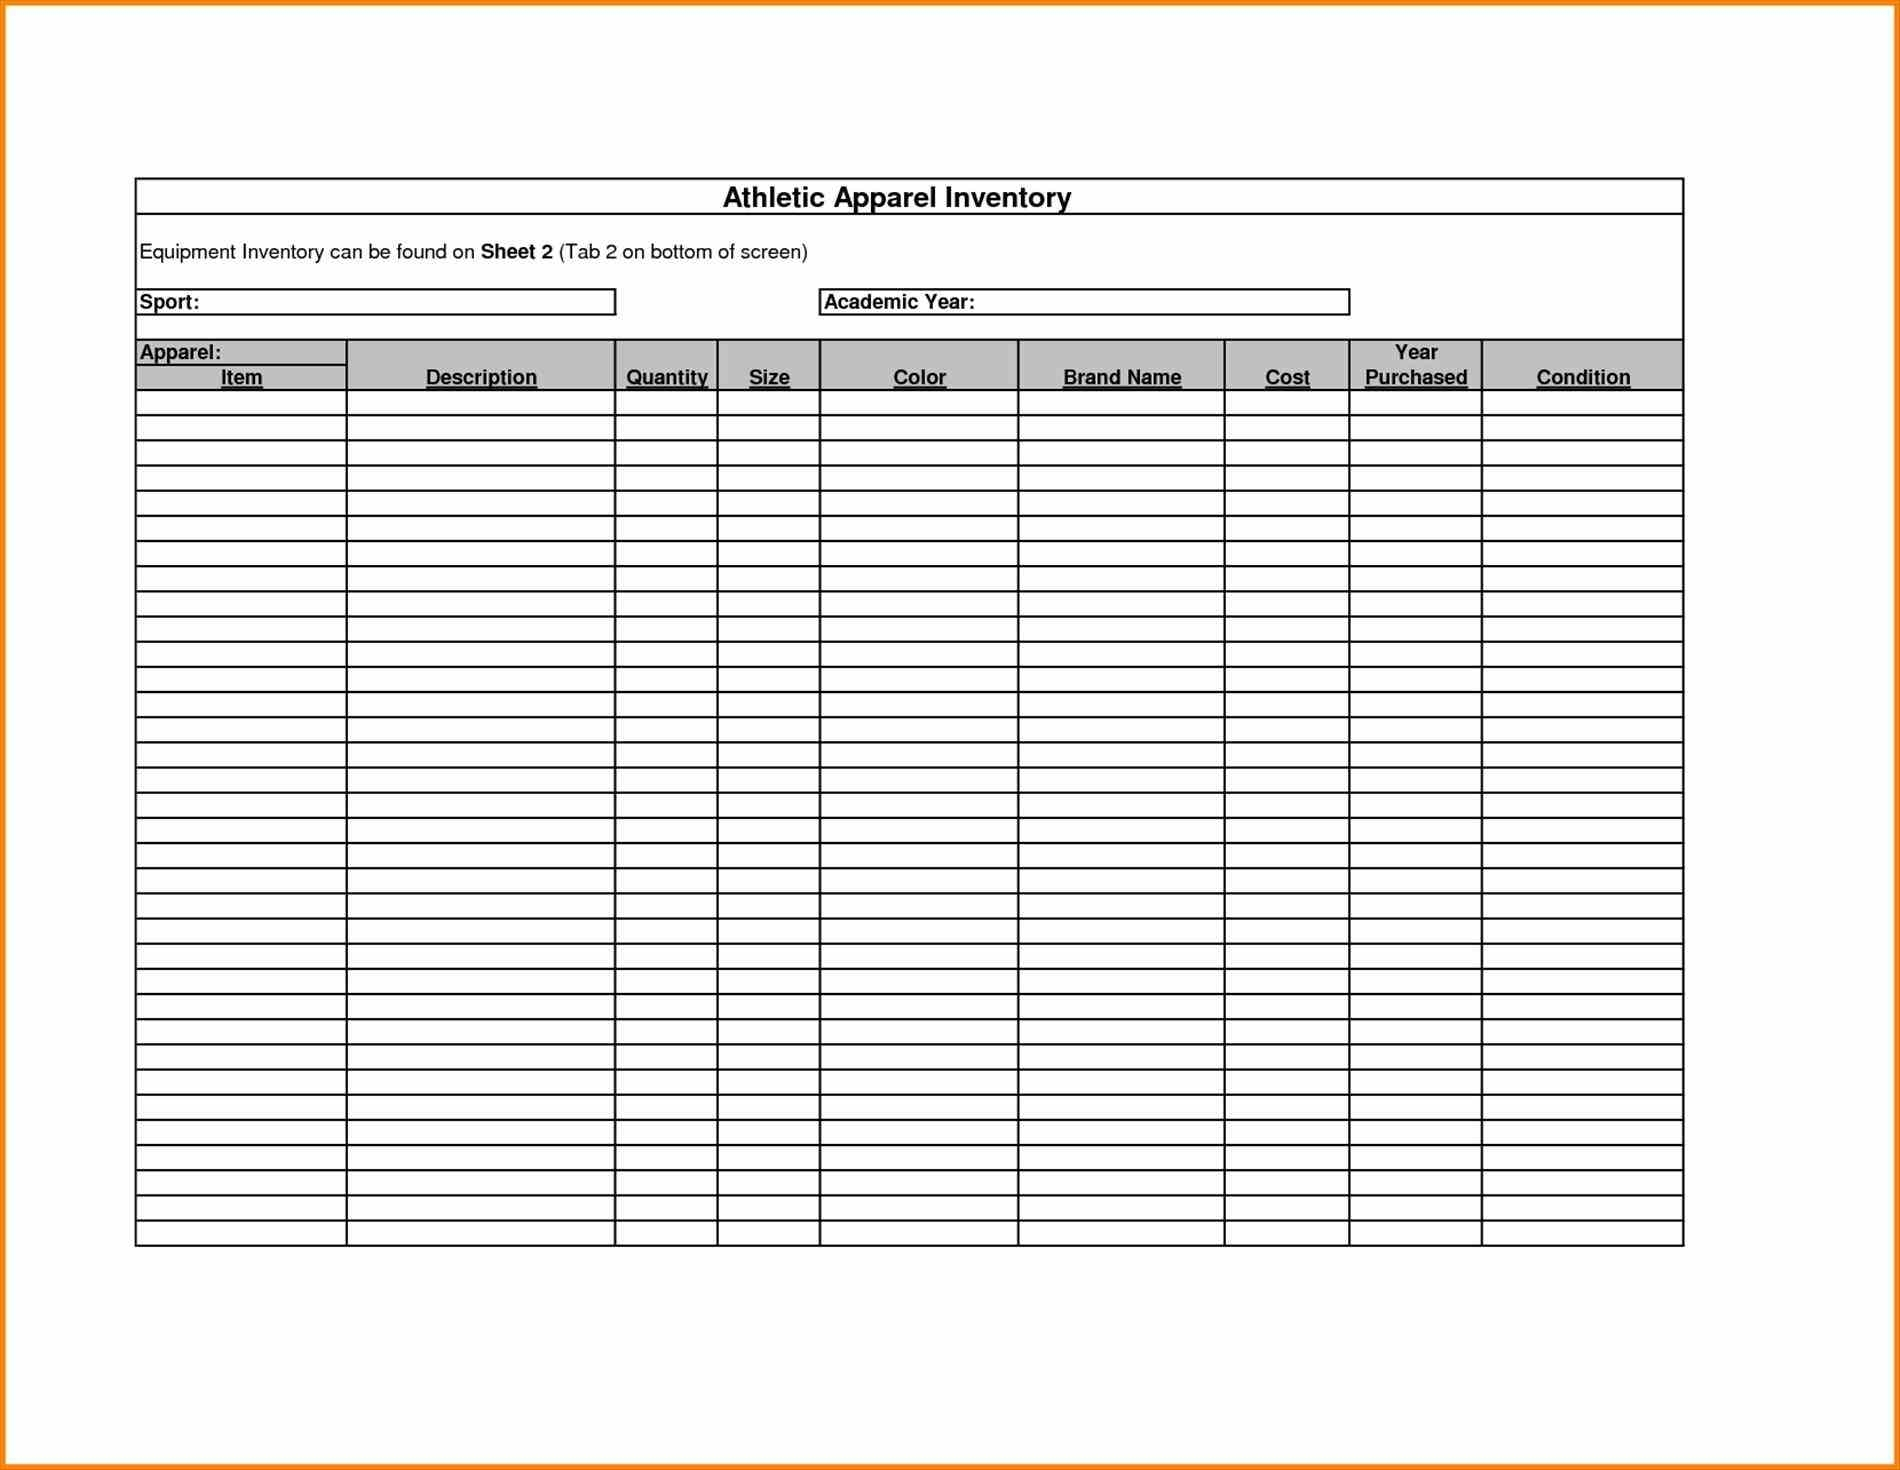 Form Template Excel Inventory Tracking Spreadsheet Templates For With Inventory Tracking Form